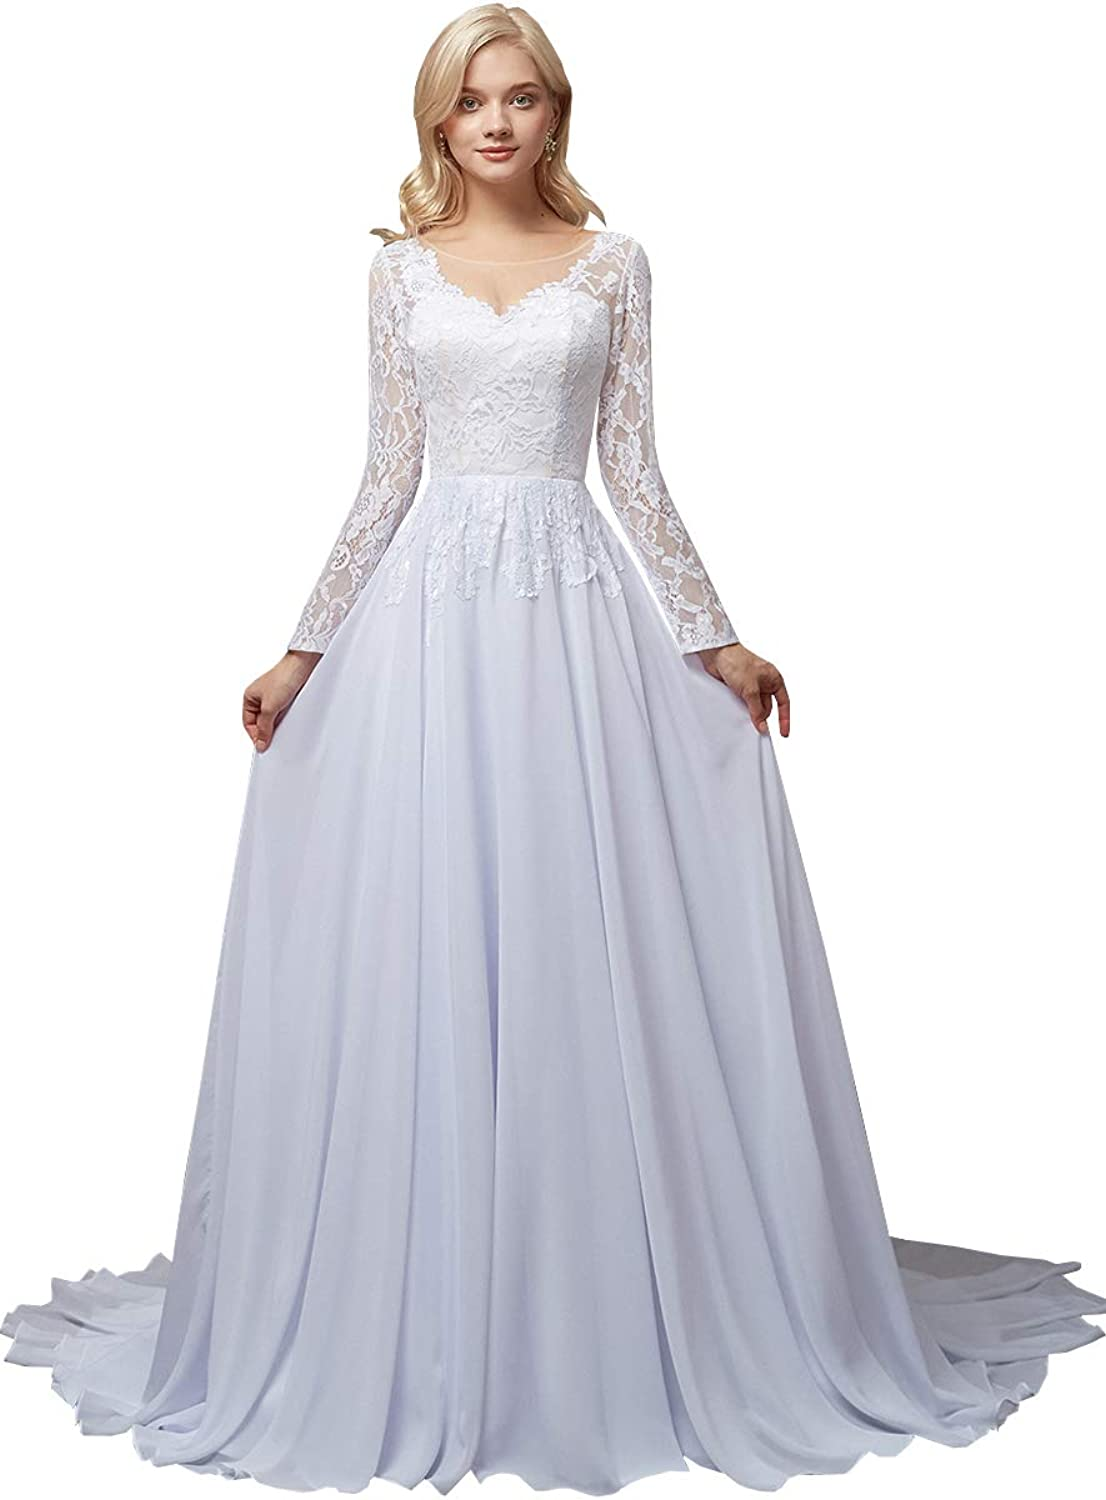 Bridal Wedding Dresses Sweep Scoop Long Sleeves Lace Button ALine Prom Dress